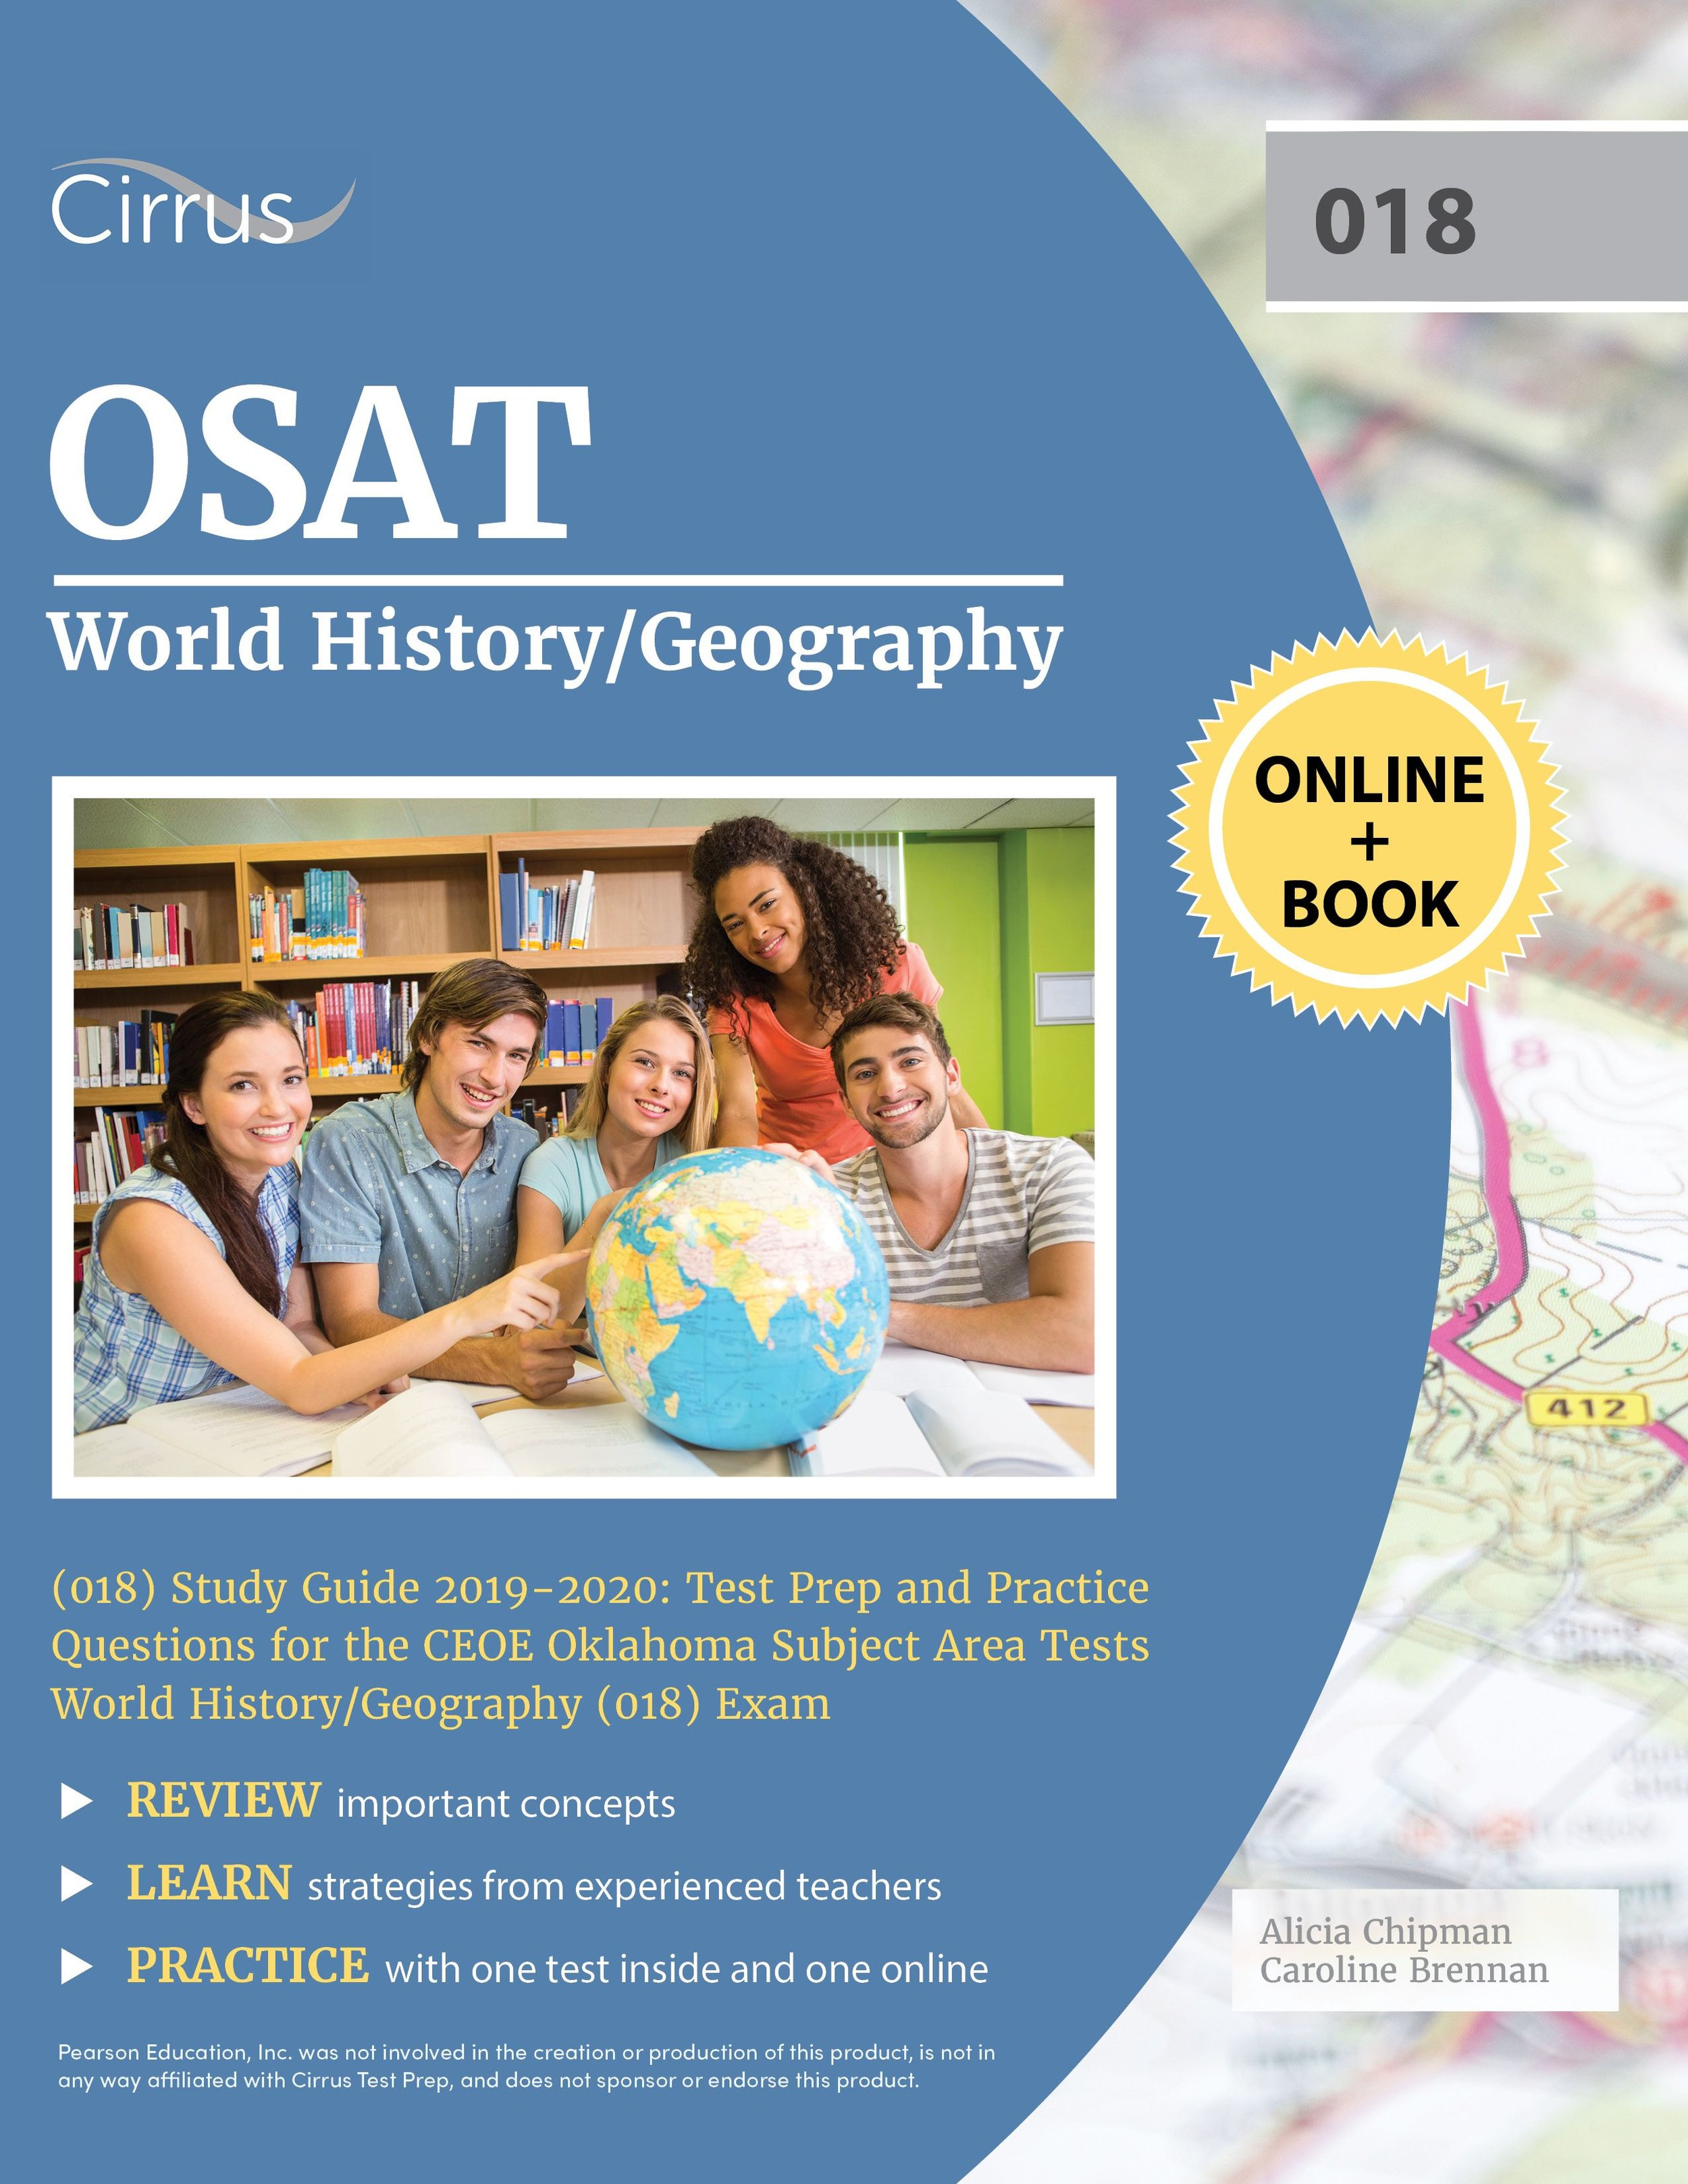 OSAT World History Geography 018 Study Guide Test Prep and Practice Questions